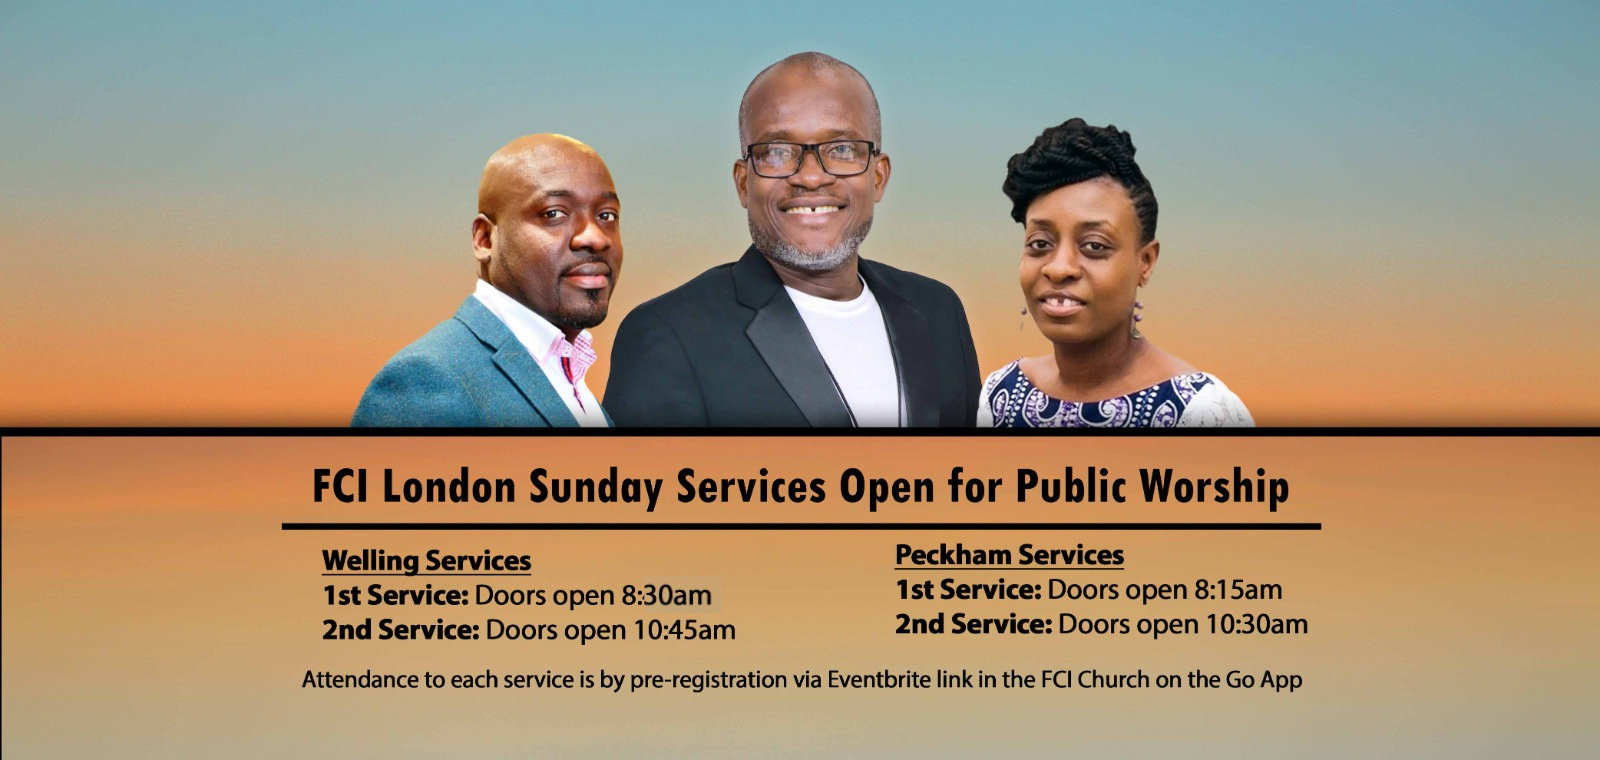 FCI Welling and Peckham Open for Public